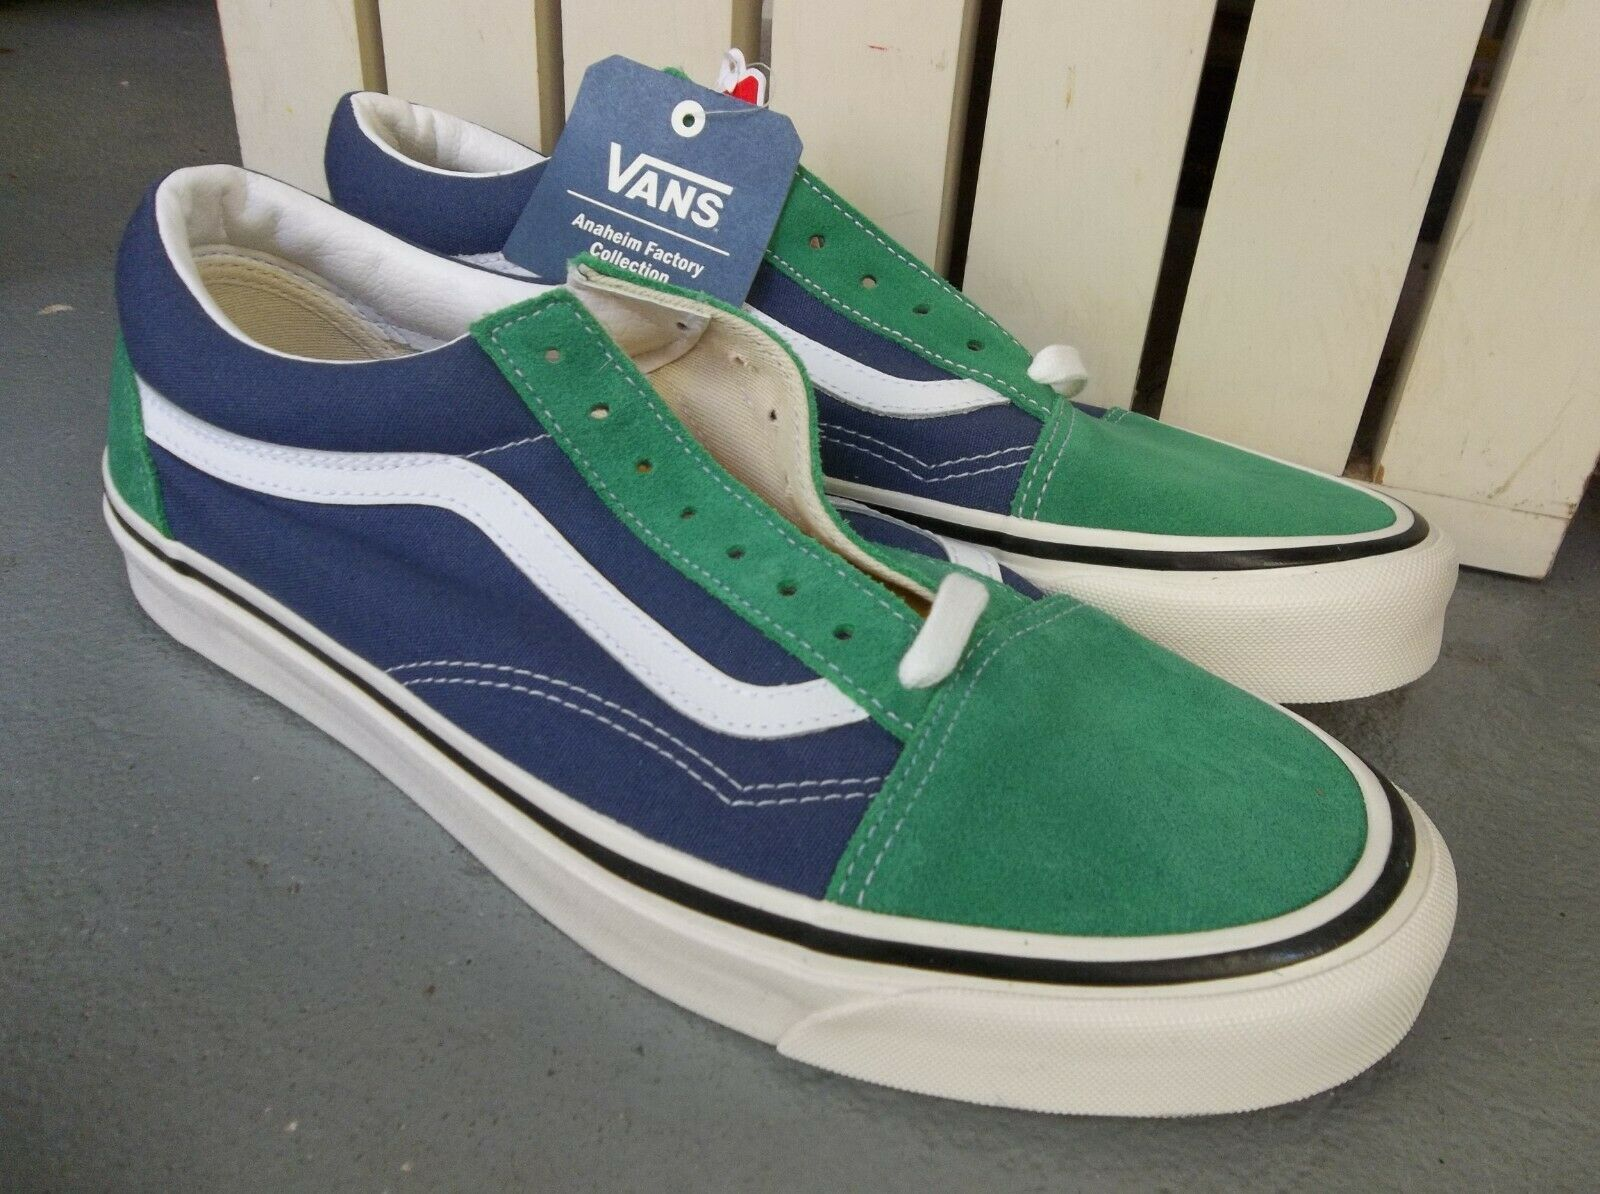 NEW MENS VANS OLD SKOOL STYLE 36 SNEAKERSSHOES SIZE 11BRAND NEW FOR 2019 3299